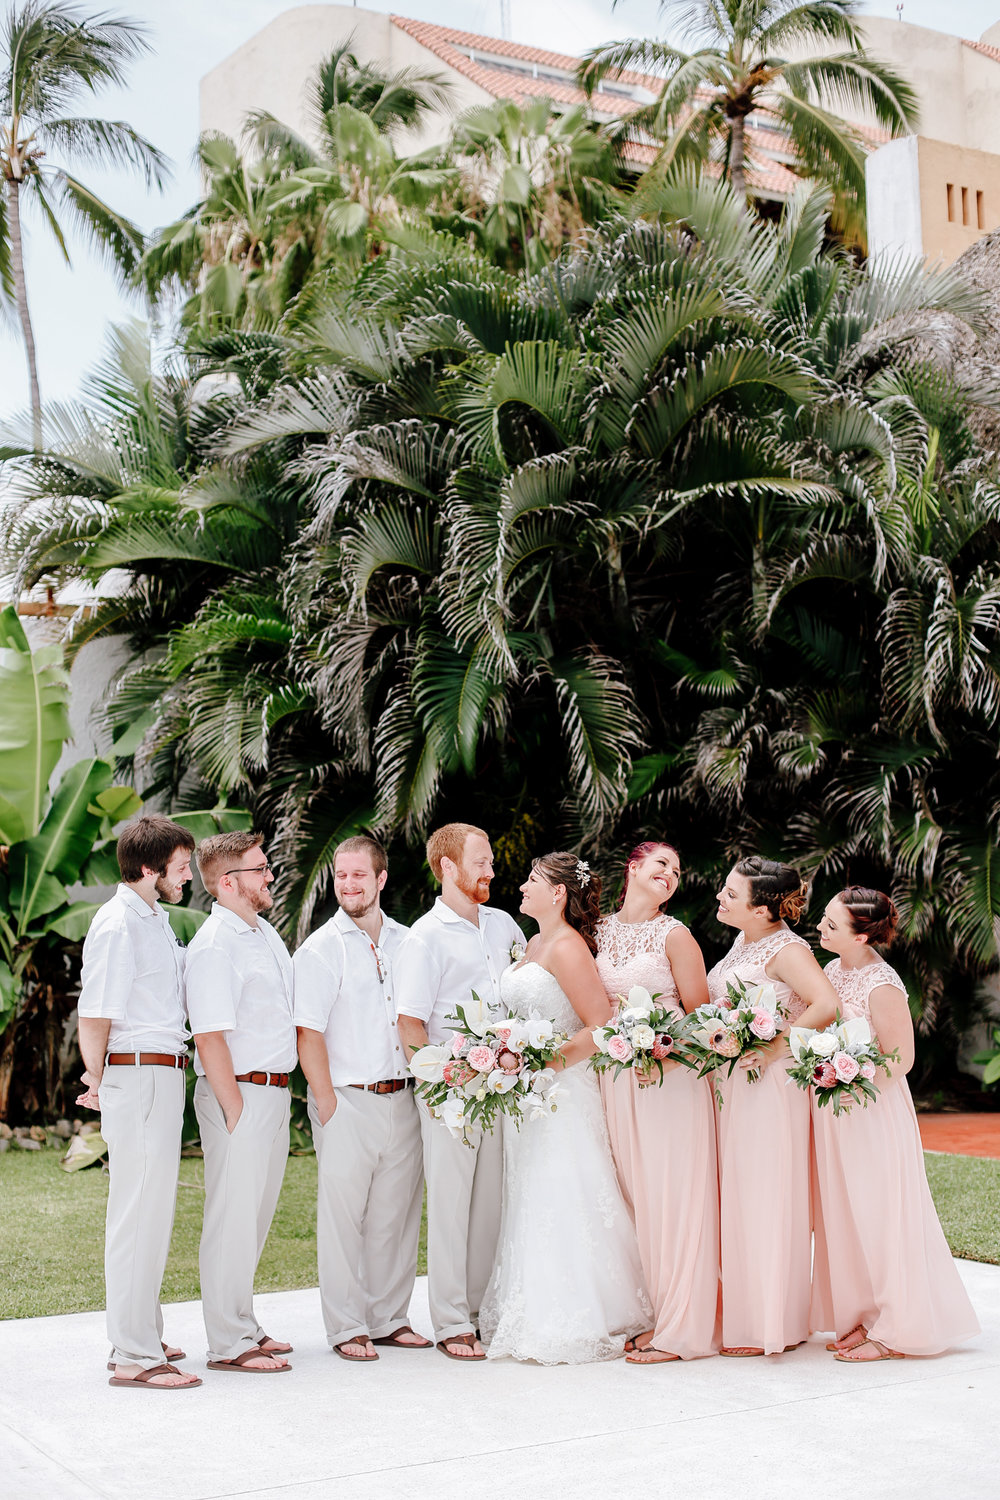 Tiffany and Ryan - Puerto Vallarta Wedding Photographer - 62.jpg